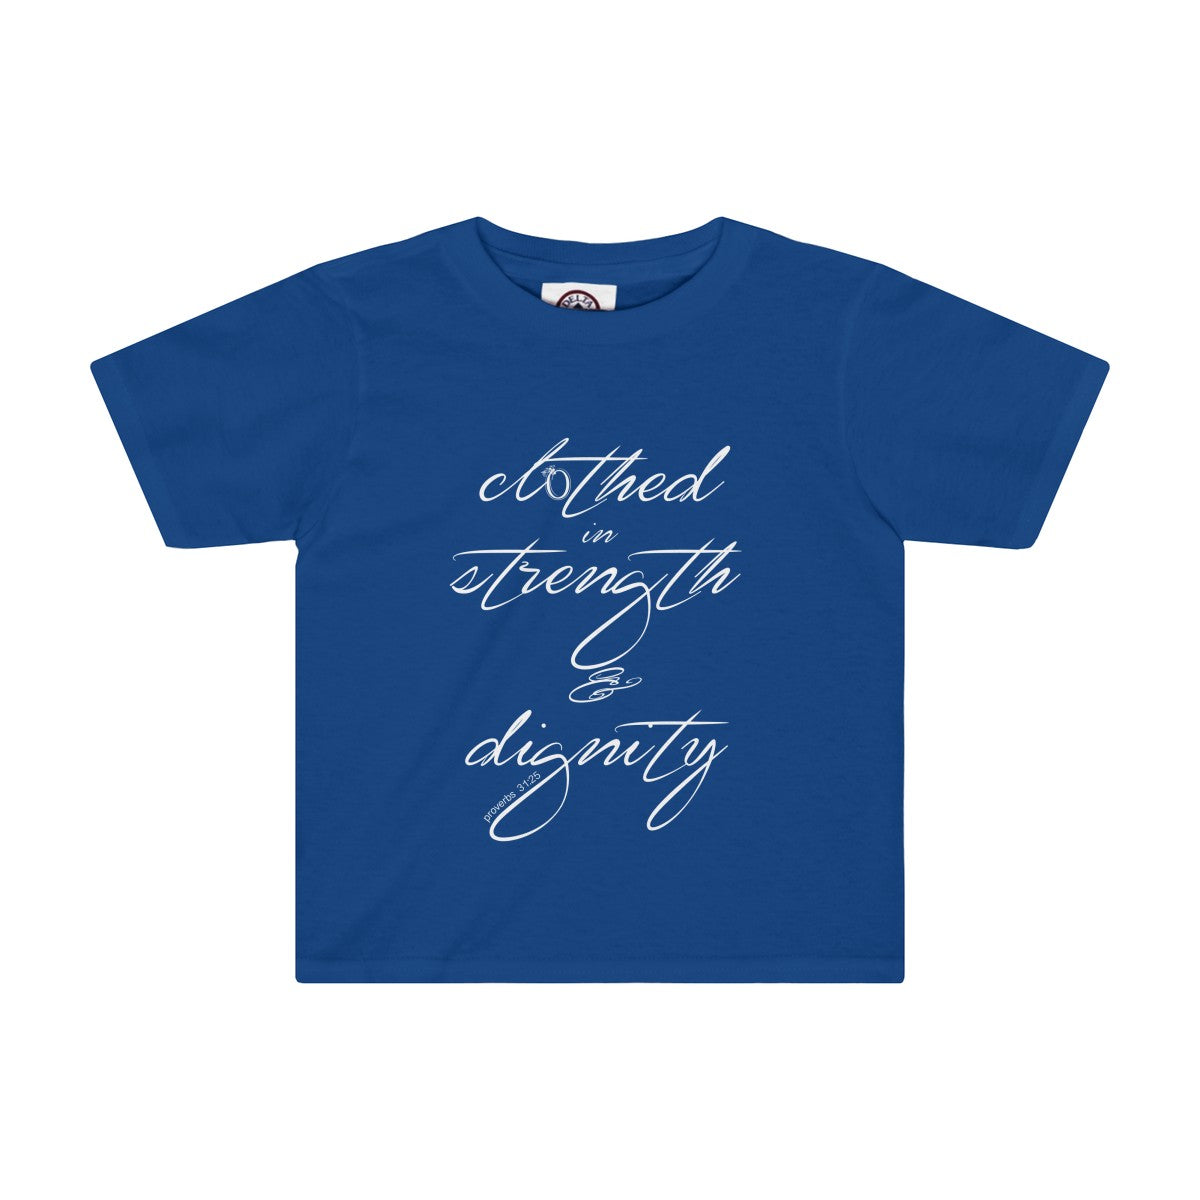 Odyssey Clothed In Strength and Dignity Kids Tee - Dark